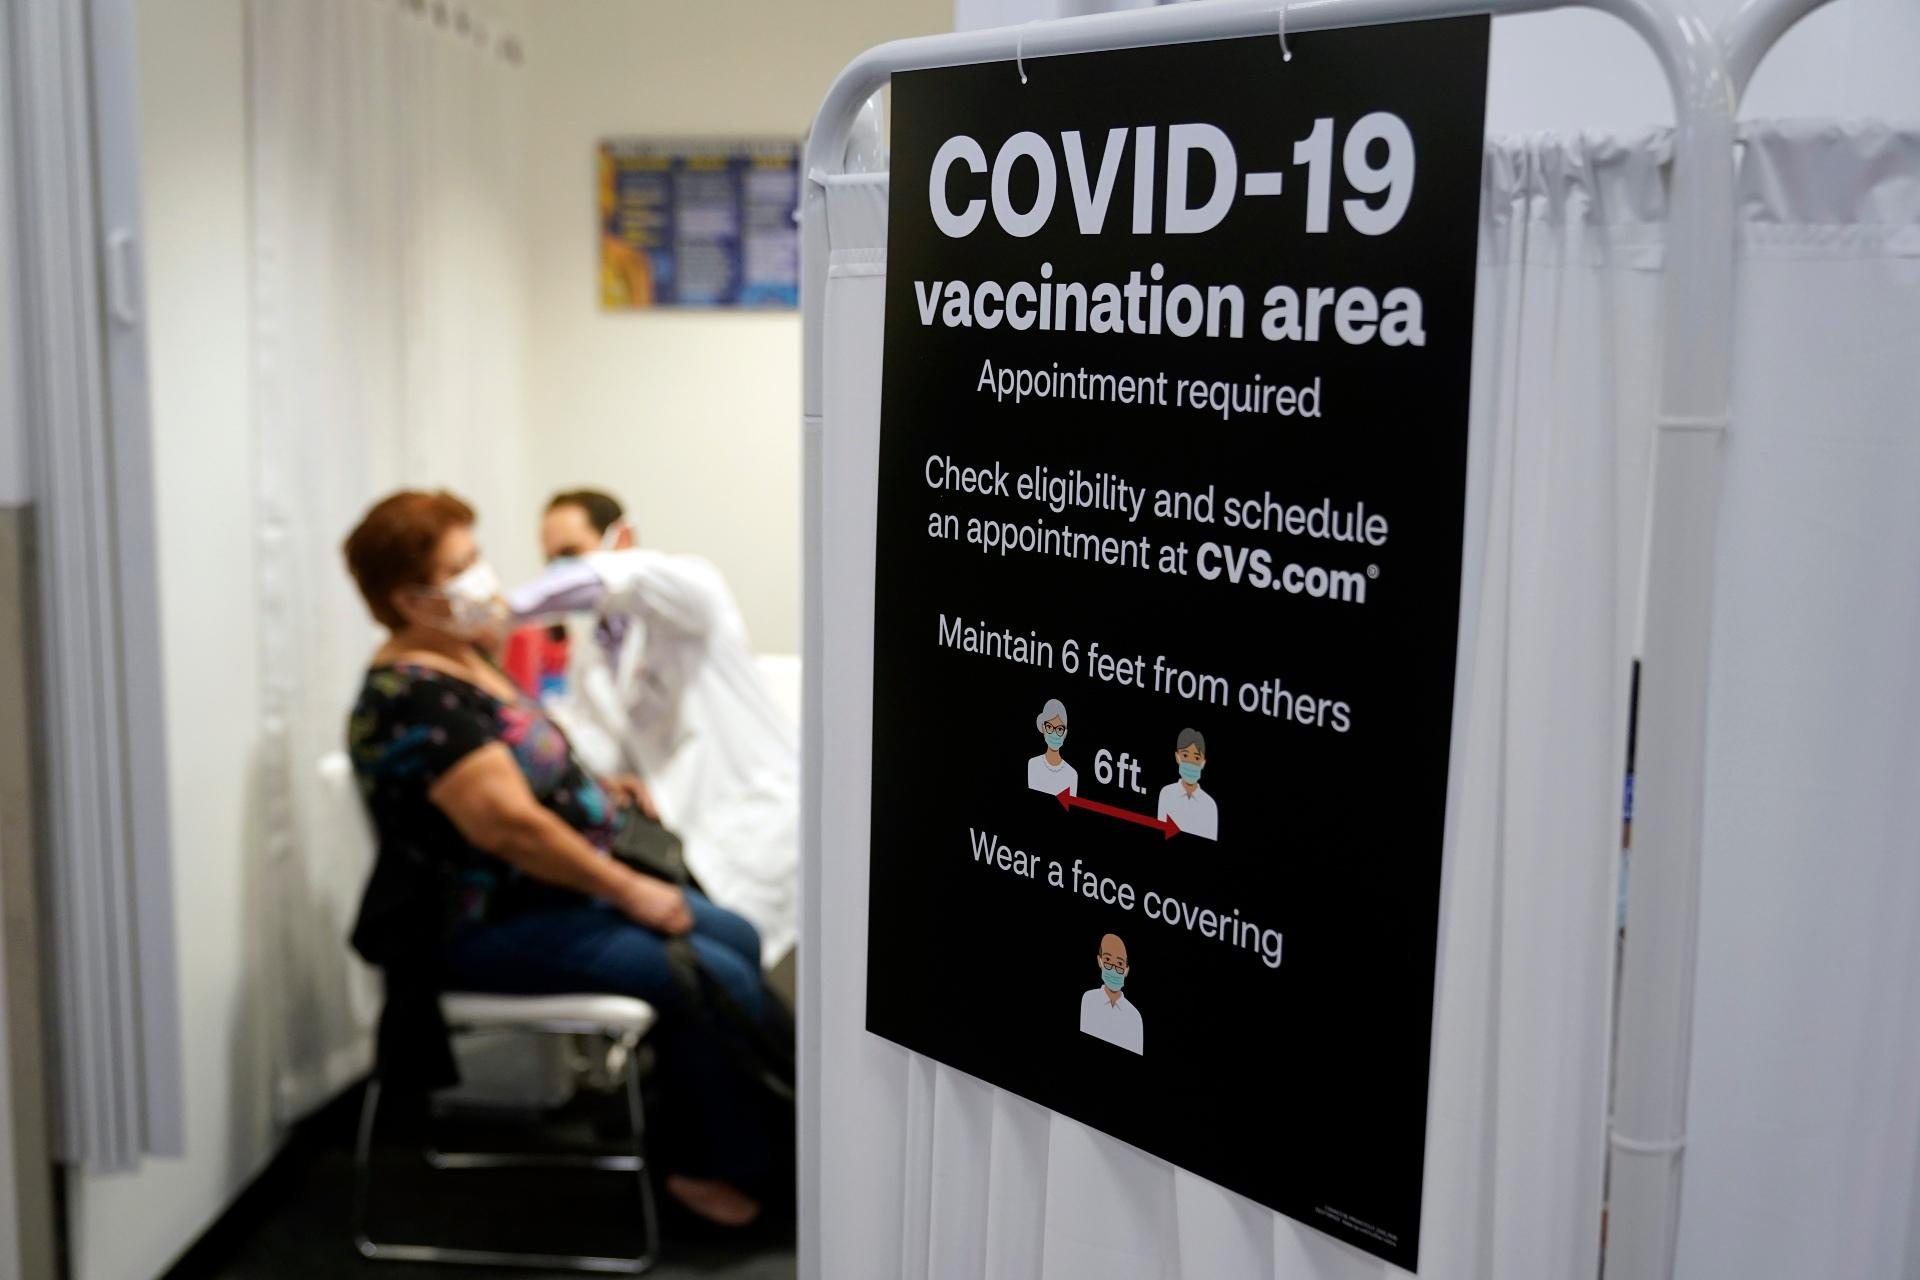 In this March 1, 2021, file photo, a patient receives a shot of the Moderna COVID-19 vaccine next to a guidelines sign at a CVS Pharmacy branch in Los Angeles. (AP Photo / Marcio Jose Sanchez, File)